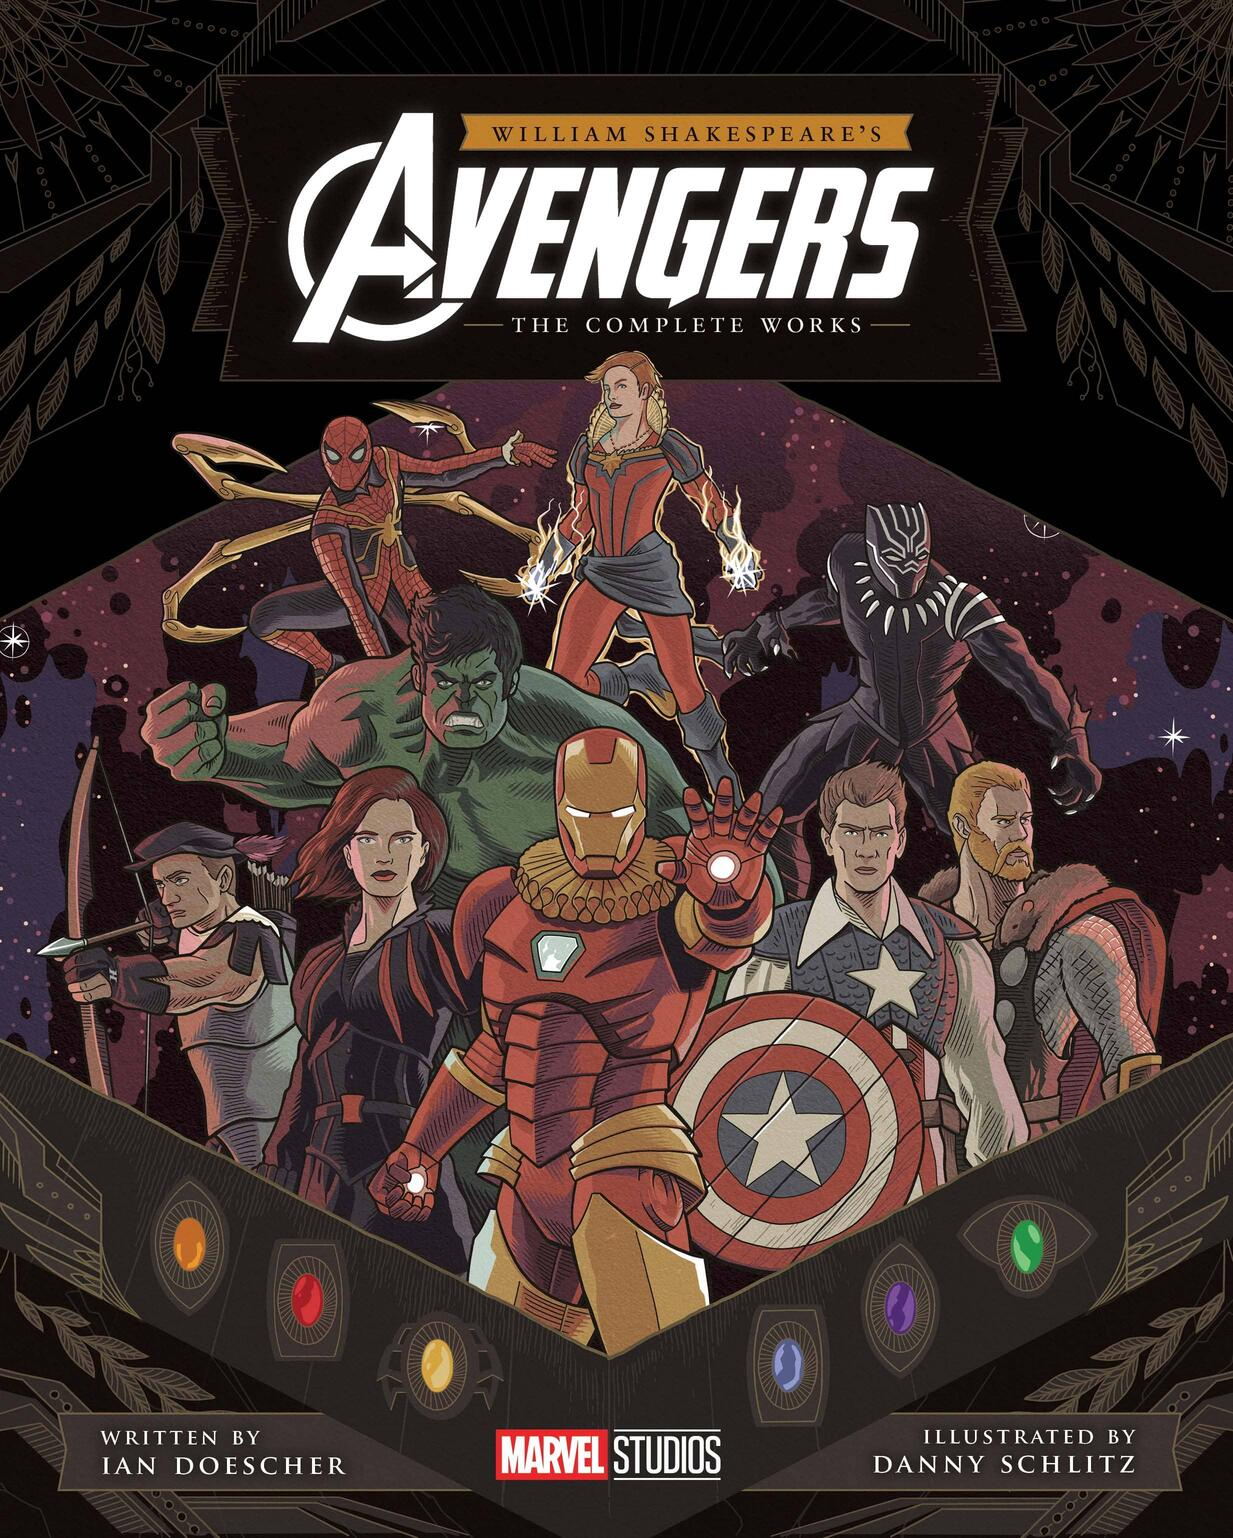 William Shakespeare's Avengers: The Complete Works.